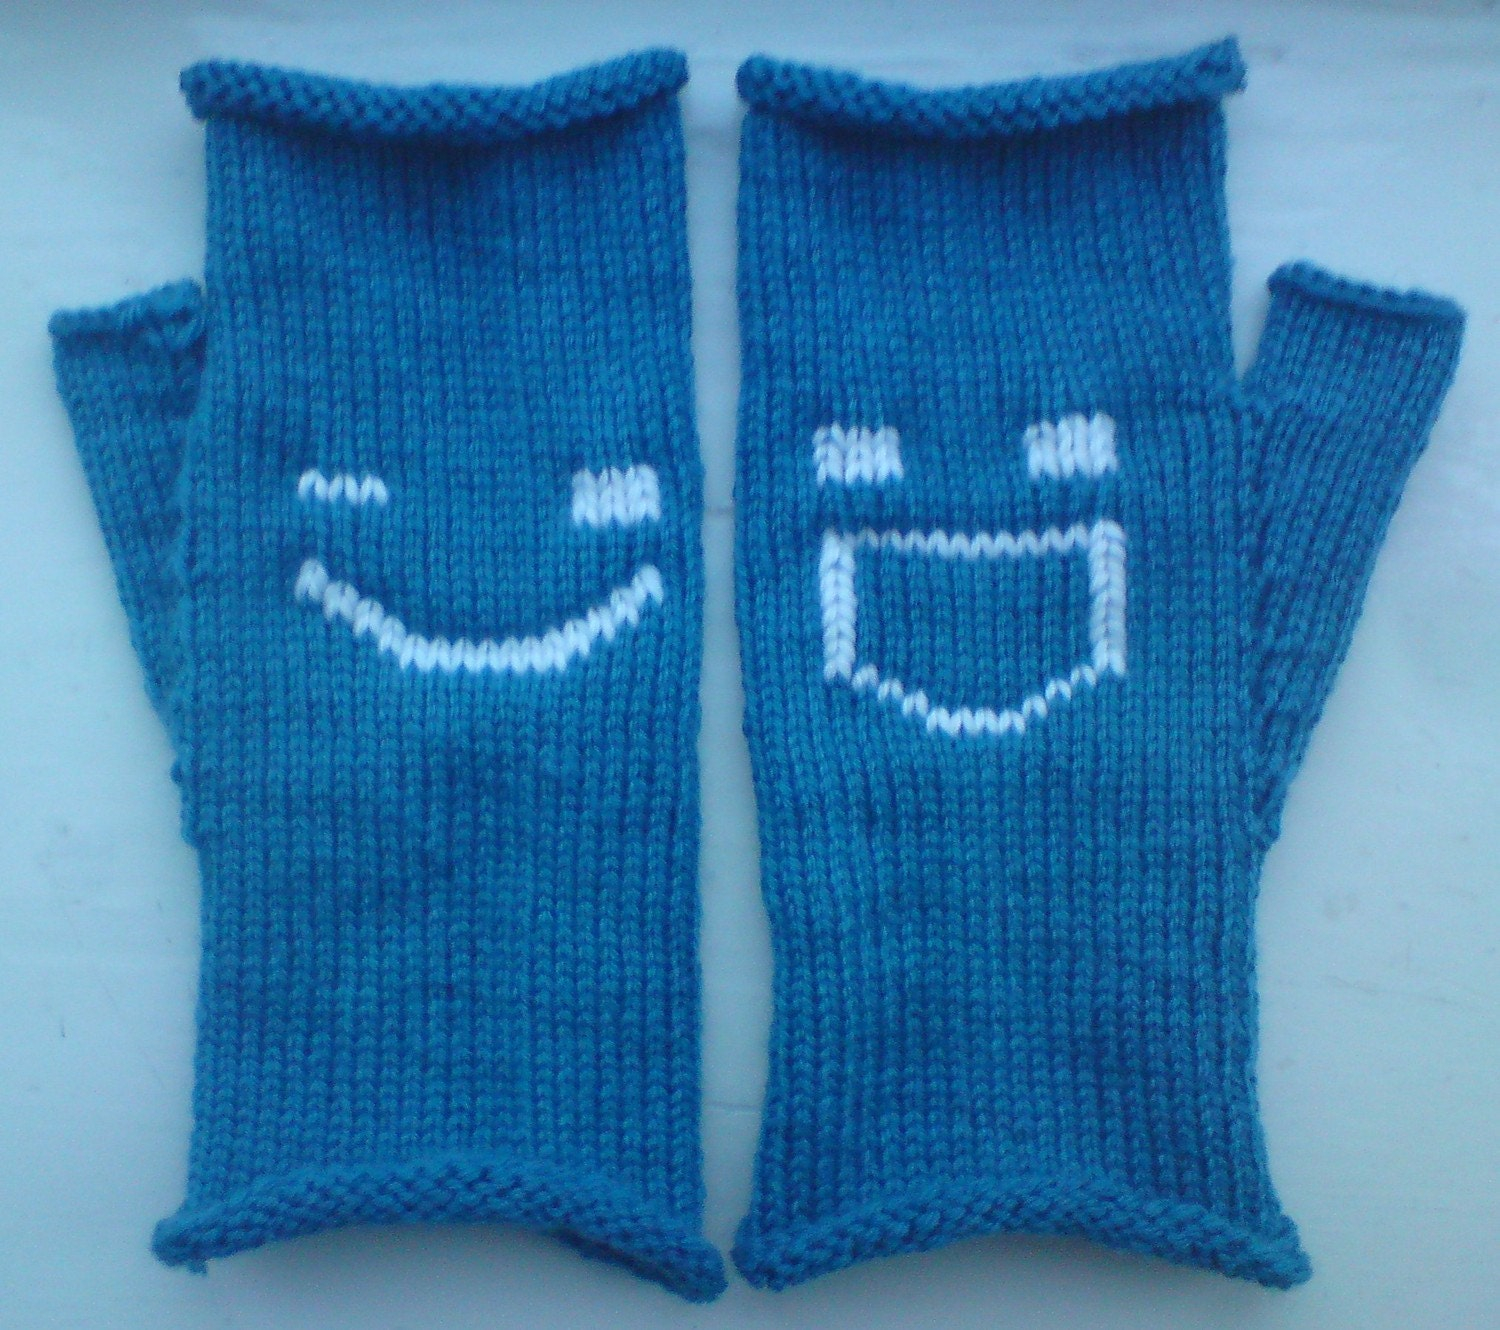 Blue Fingerless Gloves with Winking and Grinning Emoticons